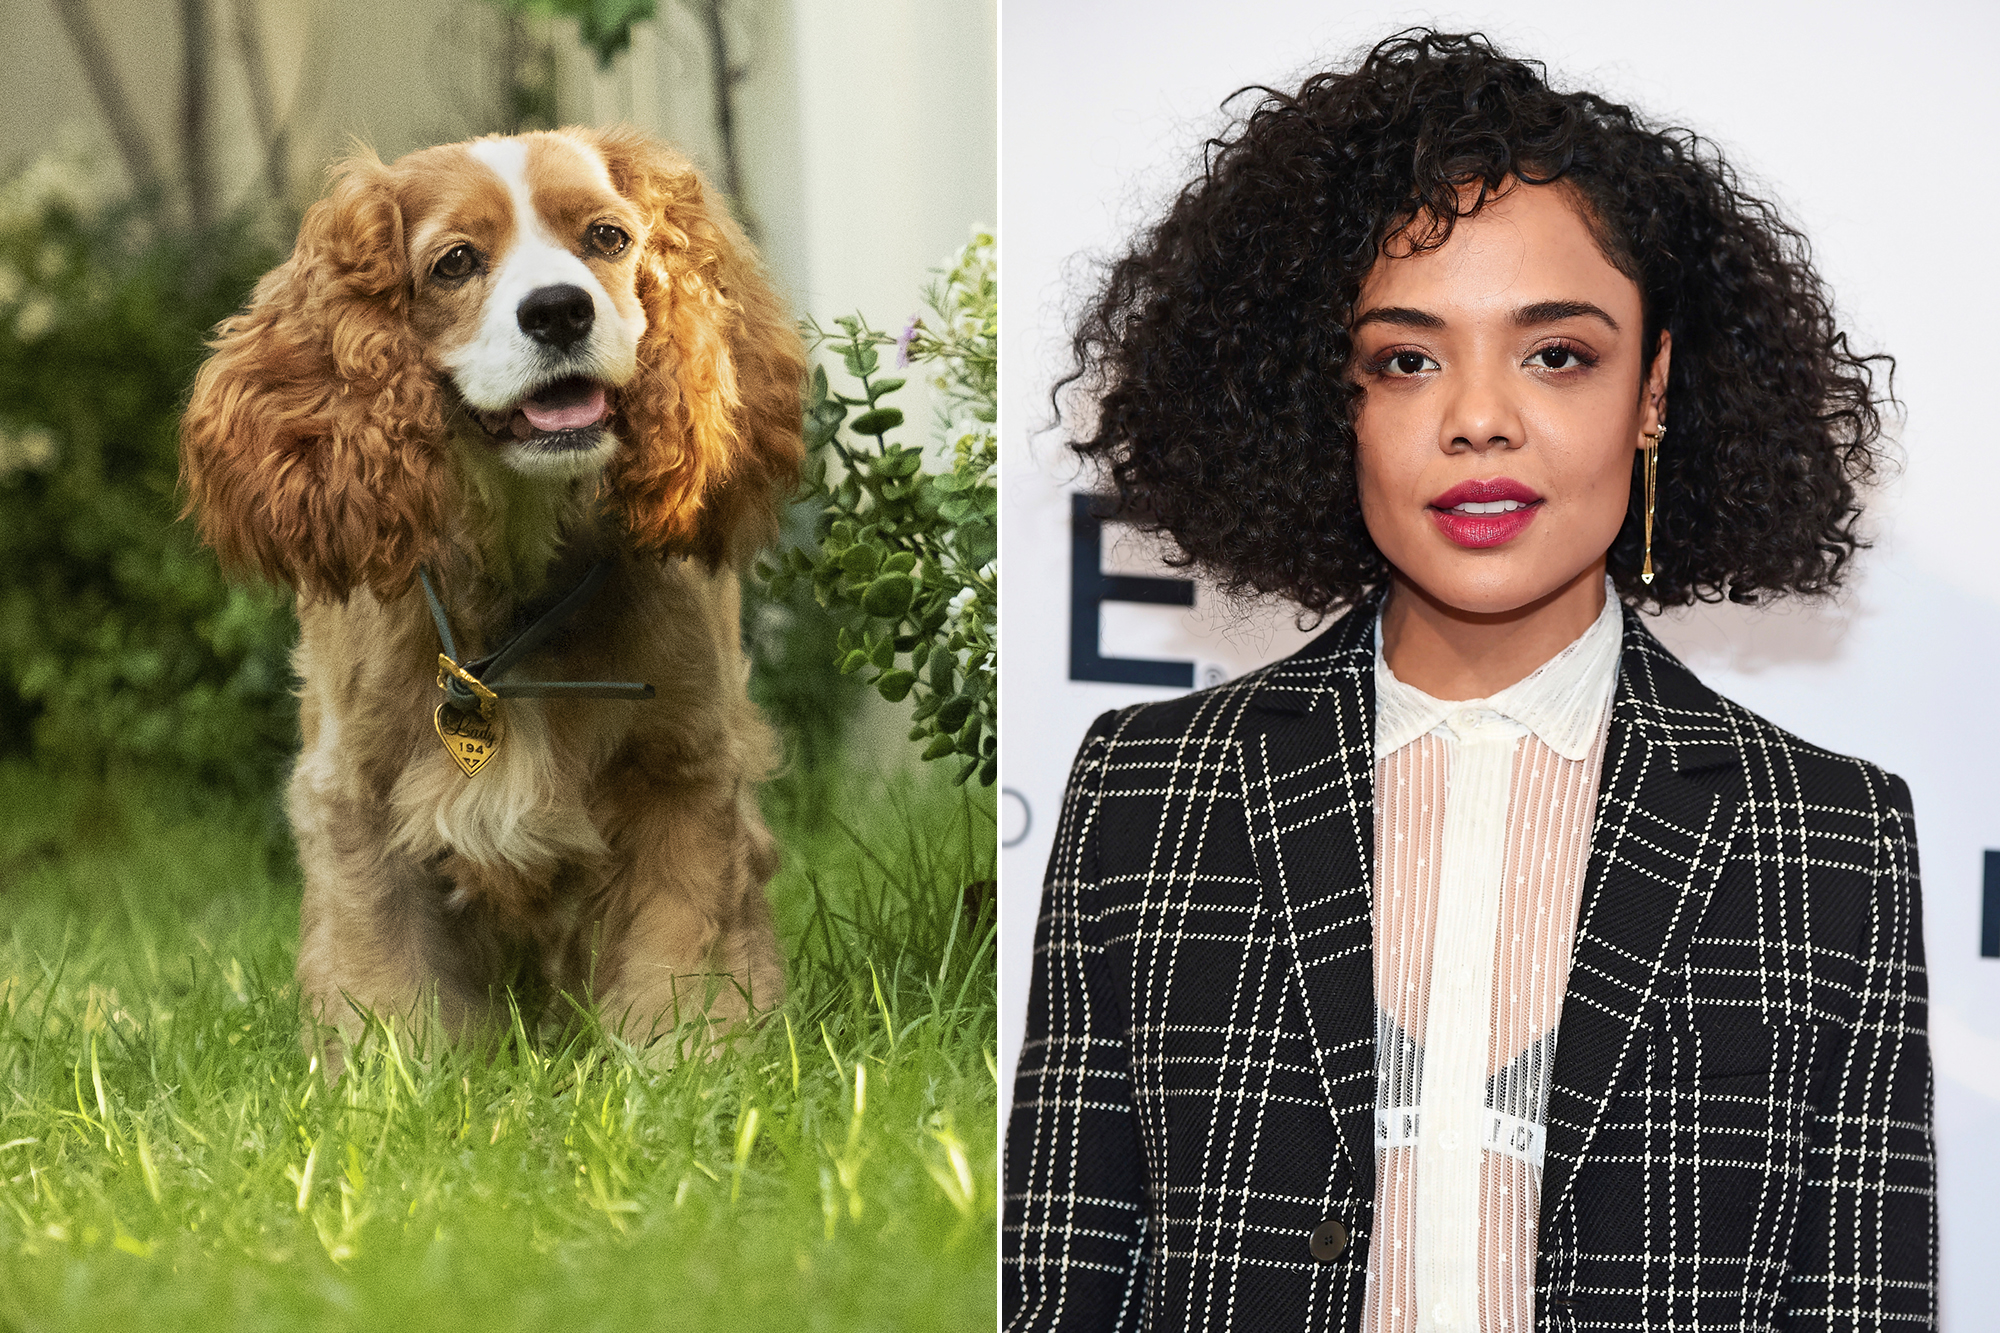 Live Action Lady and the Tramp Movie Tessa Thompson as Lady